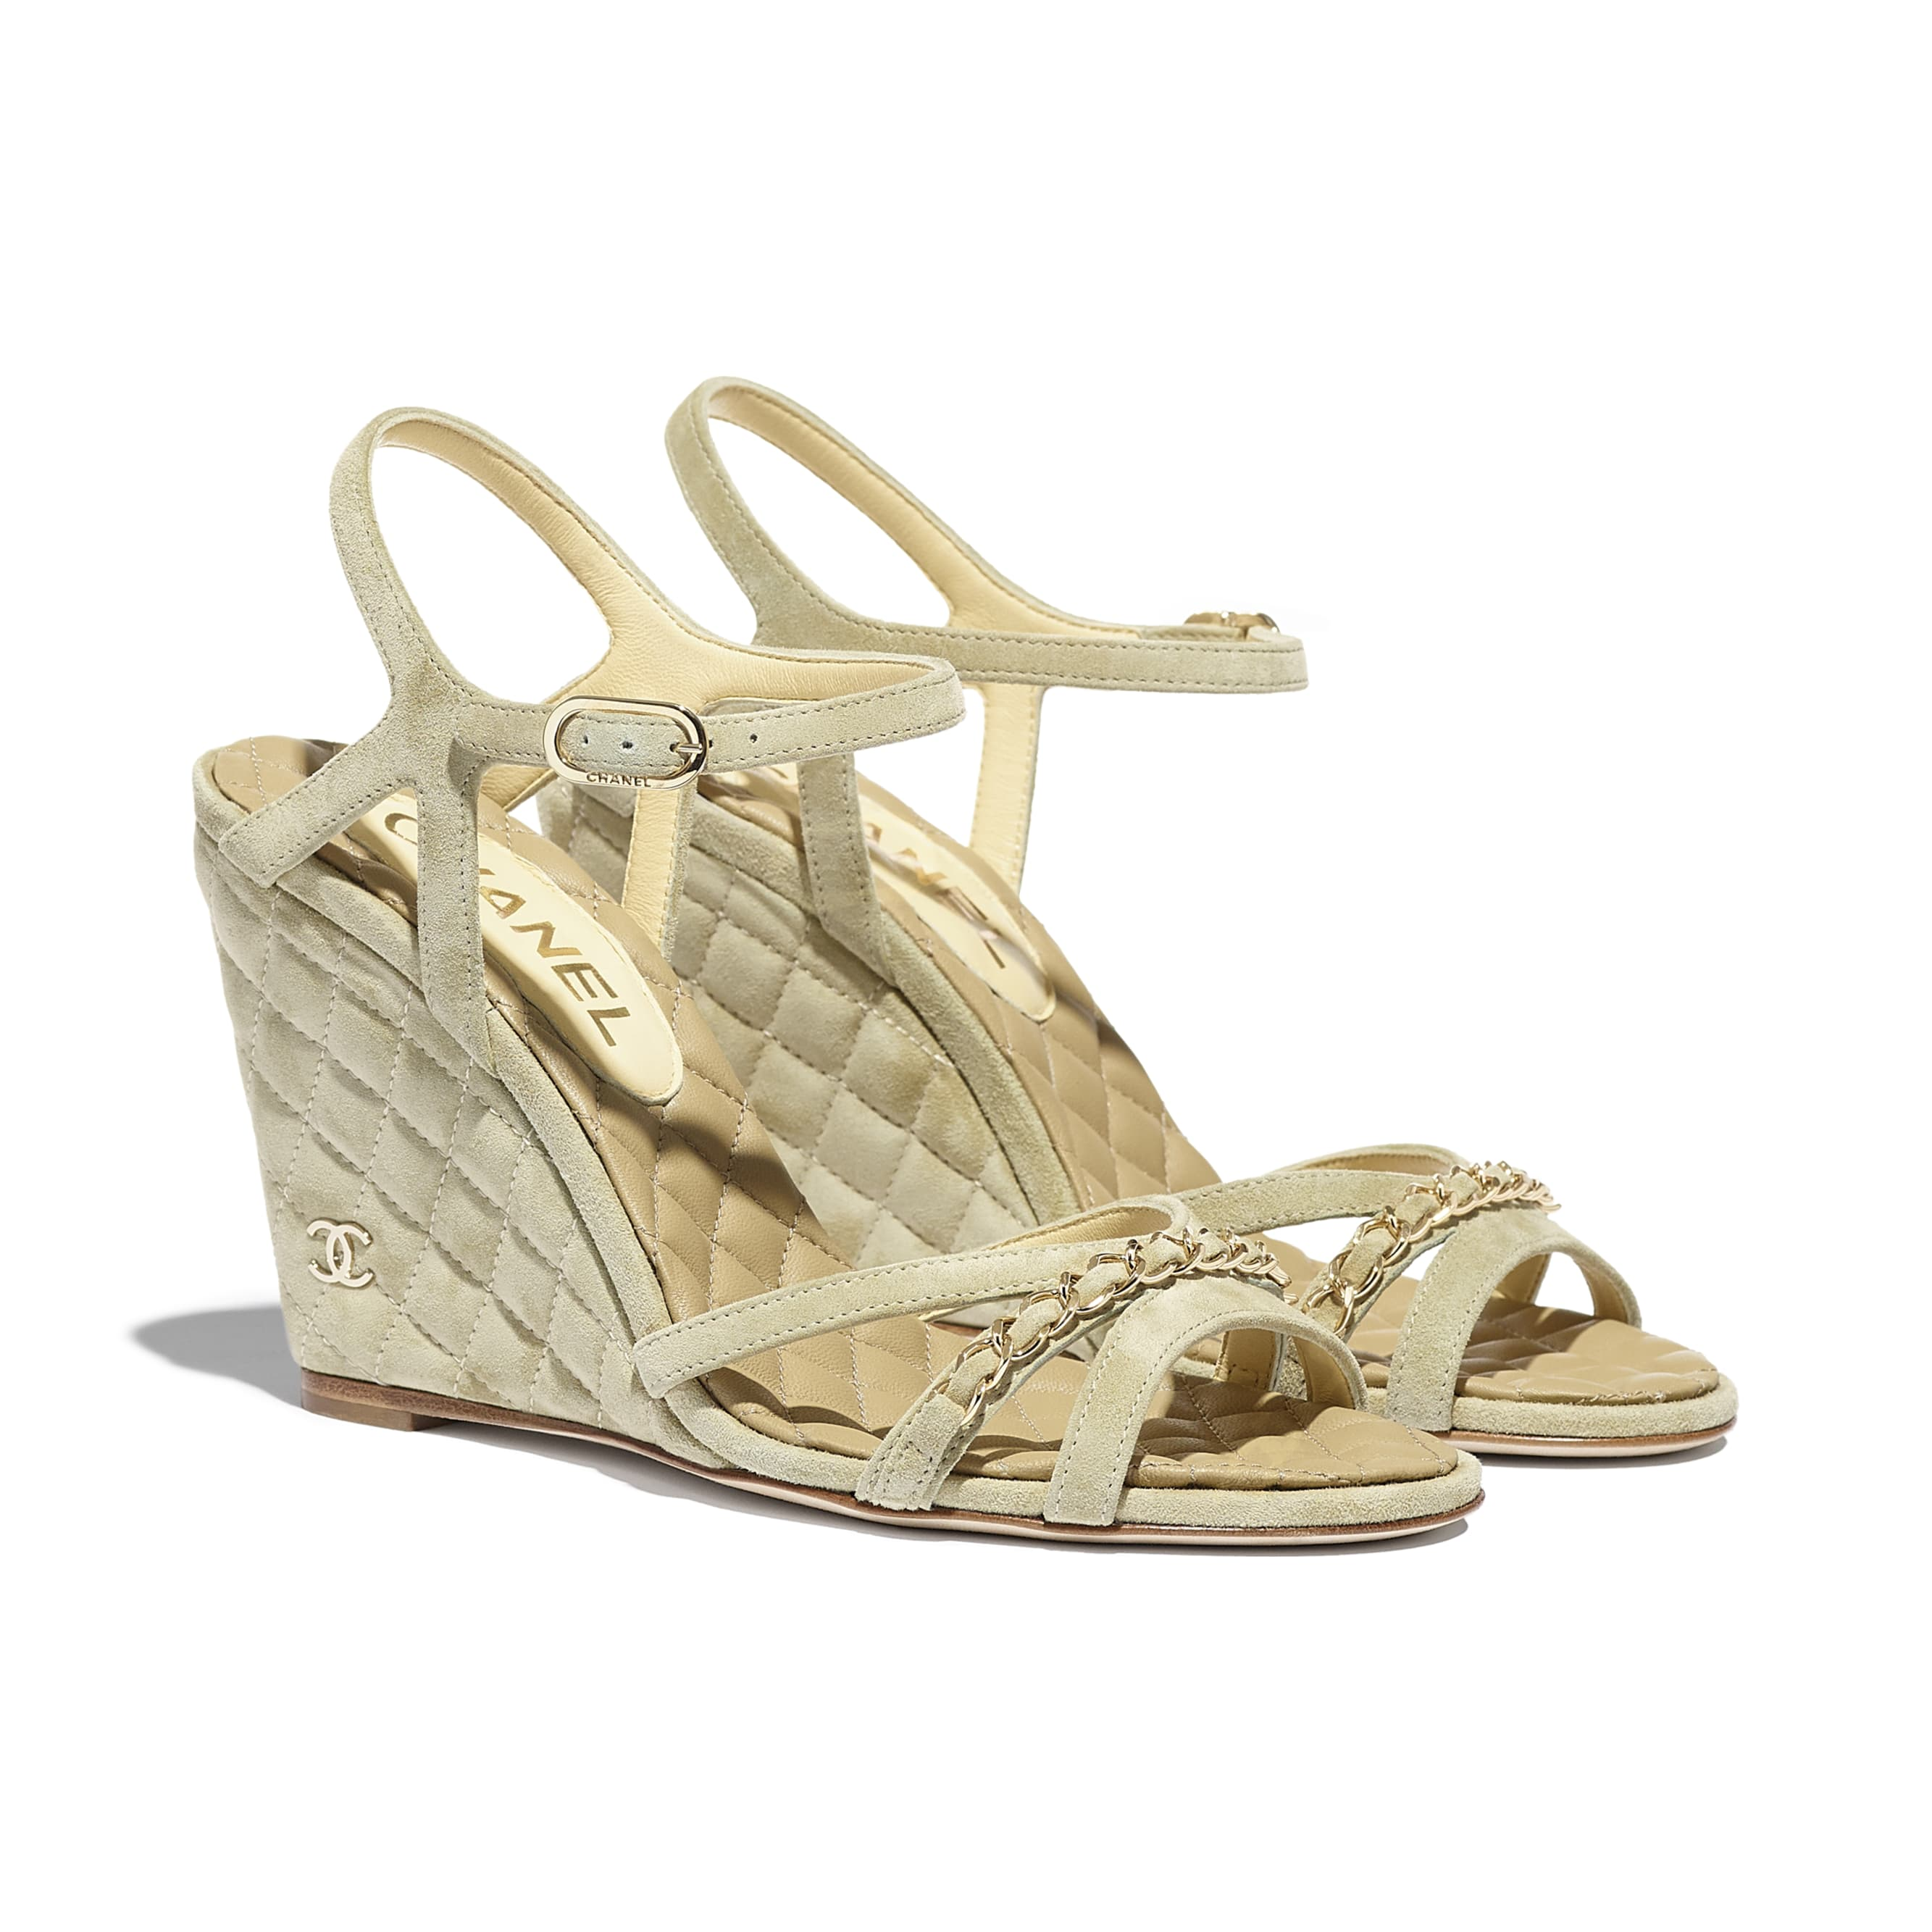 Sandals - Beige - Suede Calfskin - CHANEL - Alternative view - see standard sized version